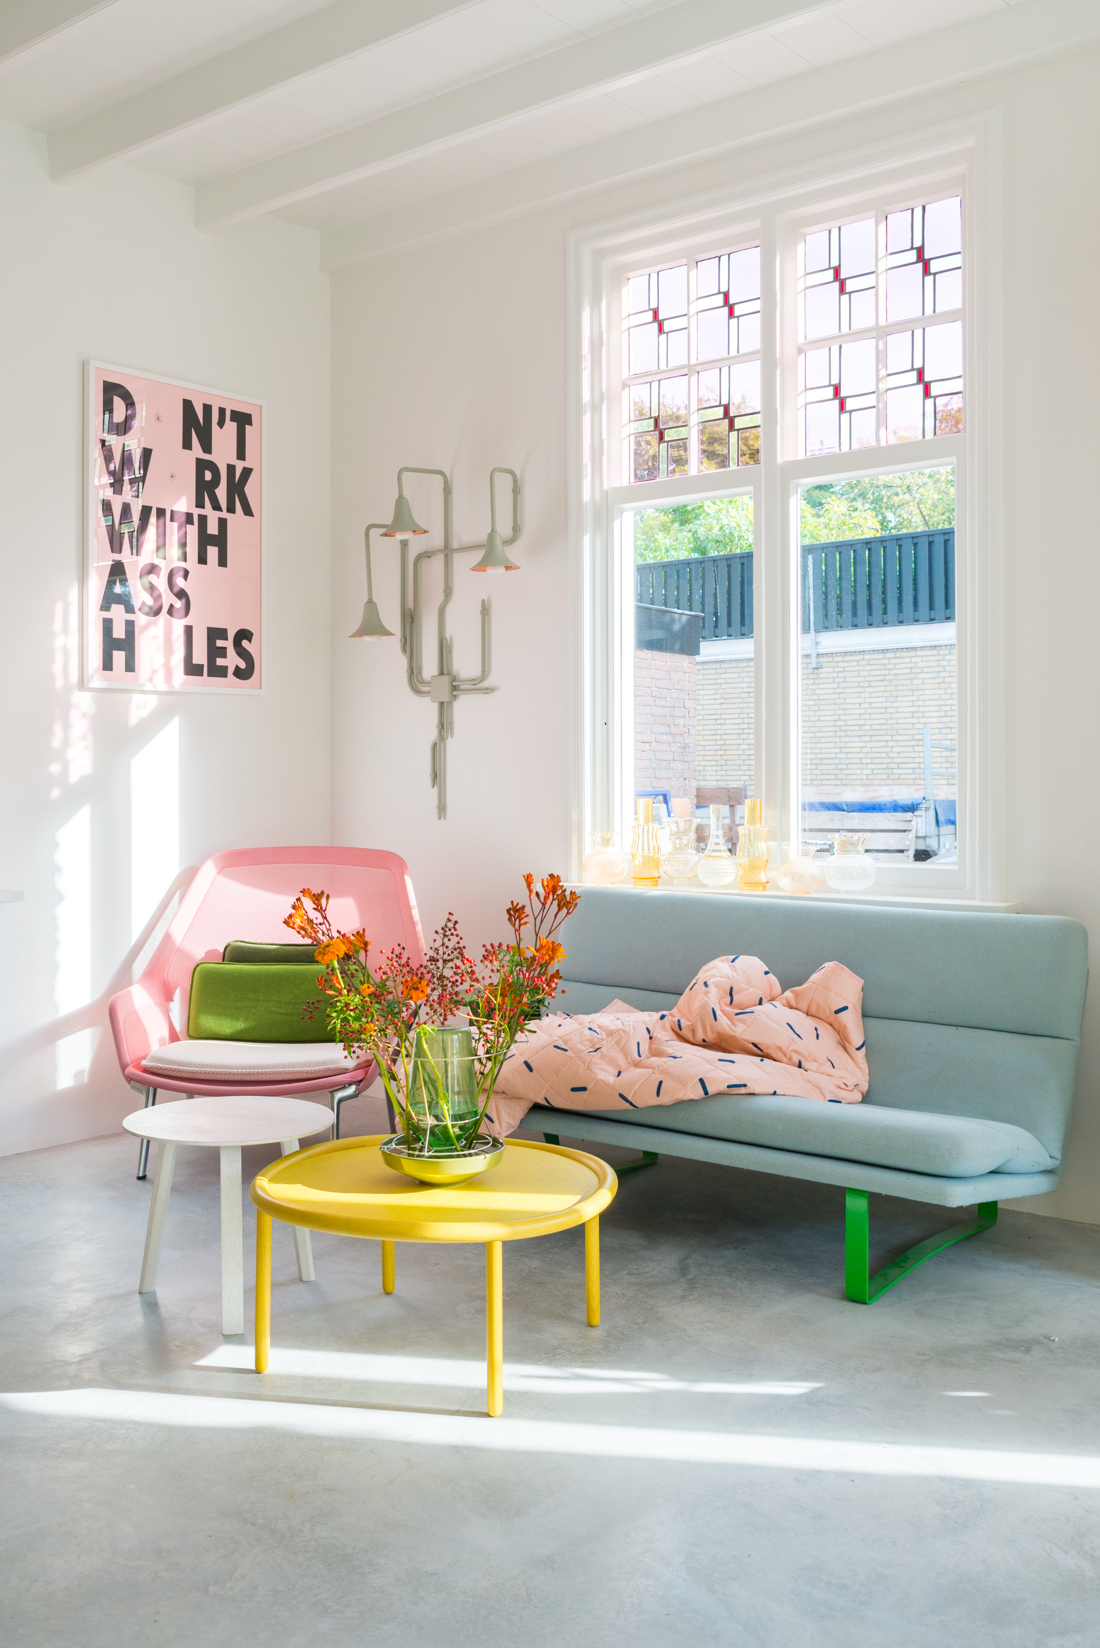 Tour This Colorful + Cheerful Dutch Home